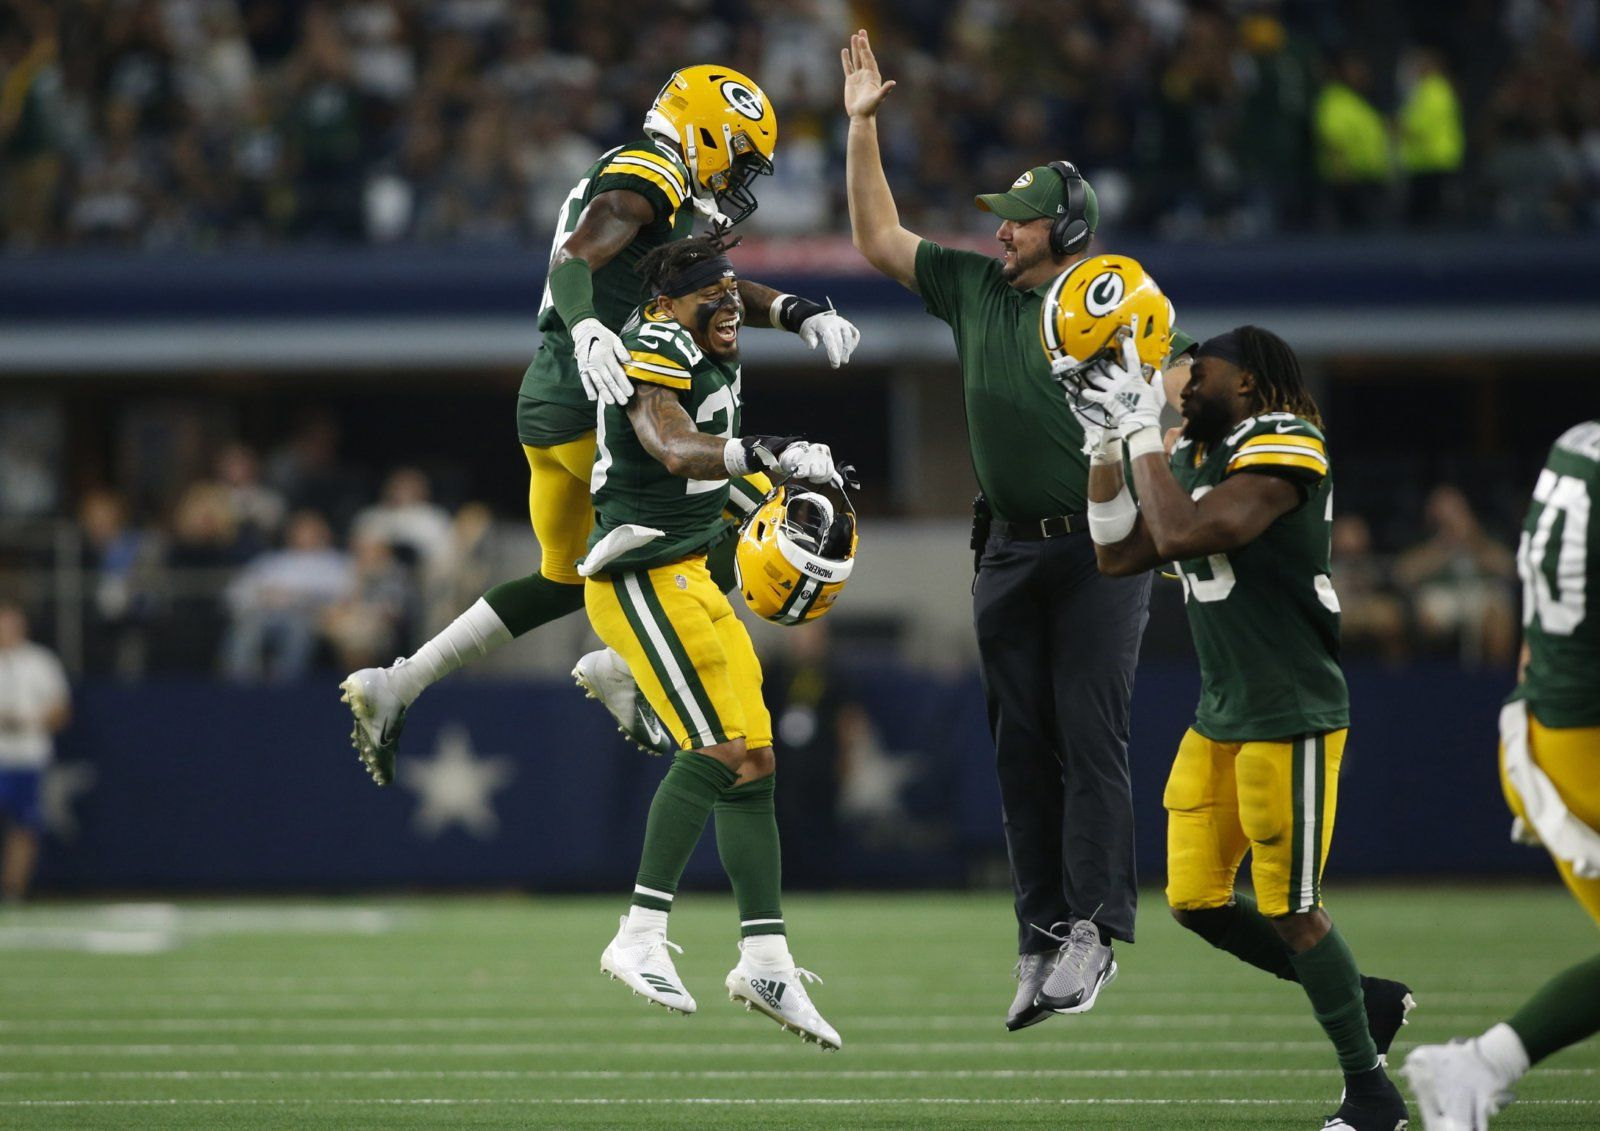 Green Bay S Young Core Proving They Can Become Elite Football Helmets Nfl News Nfl Betting